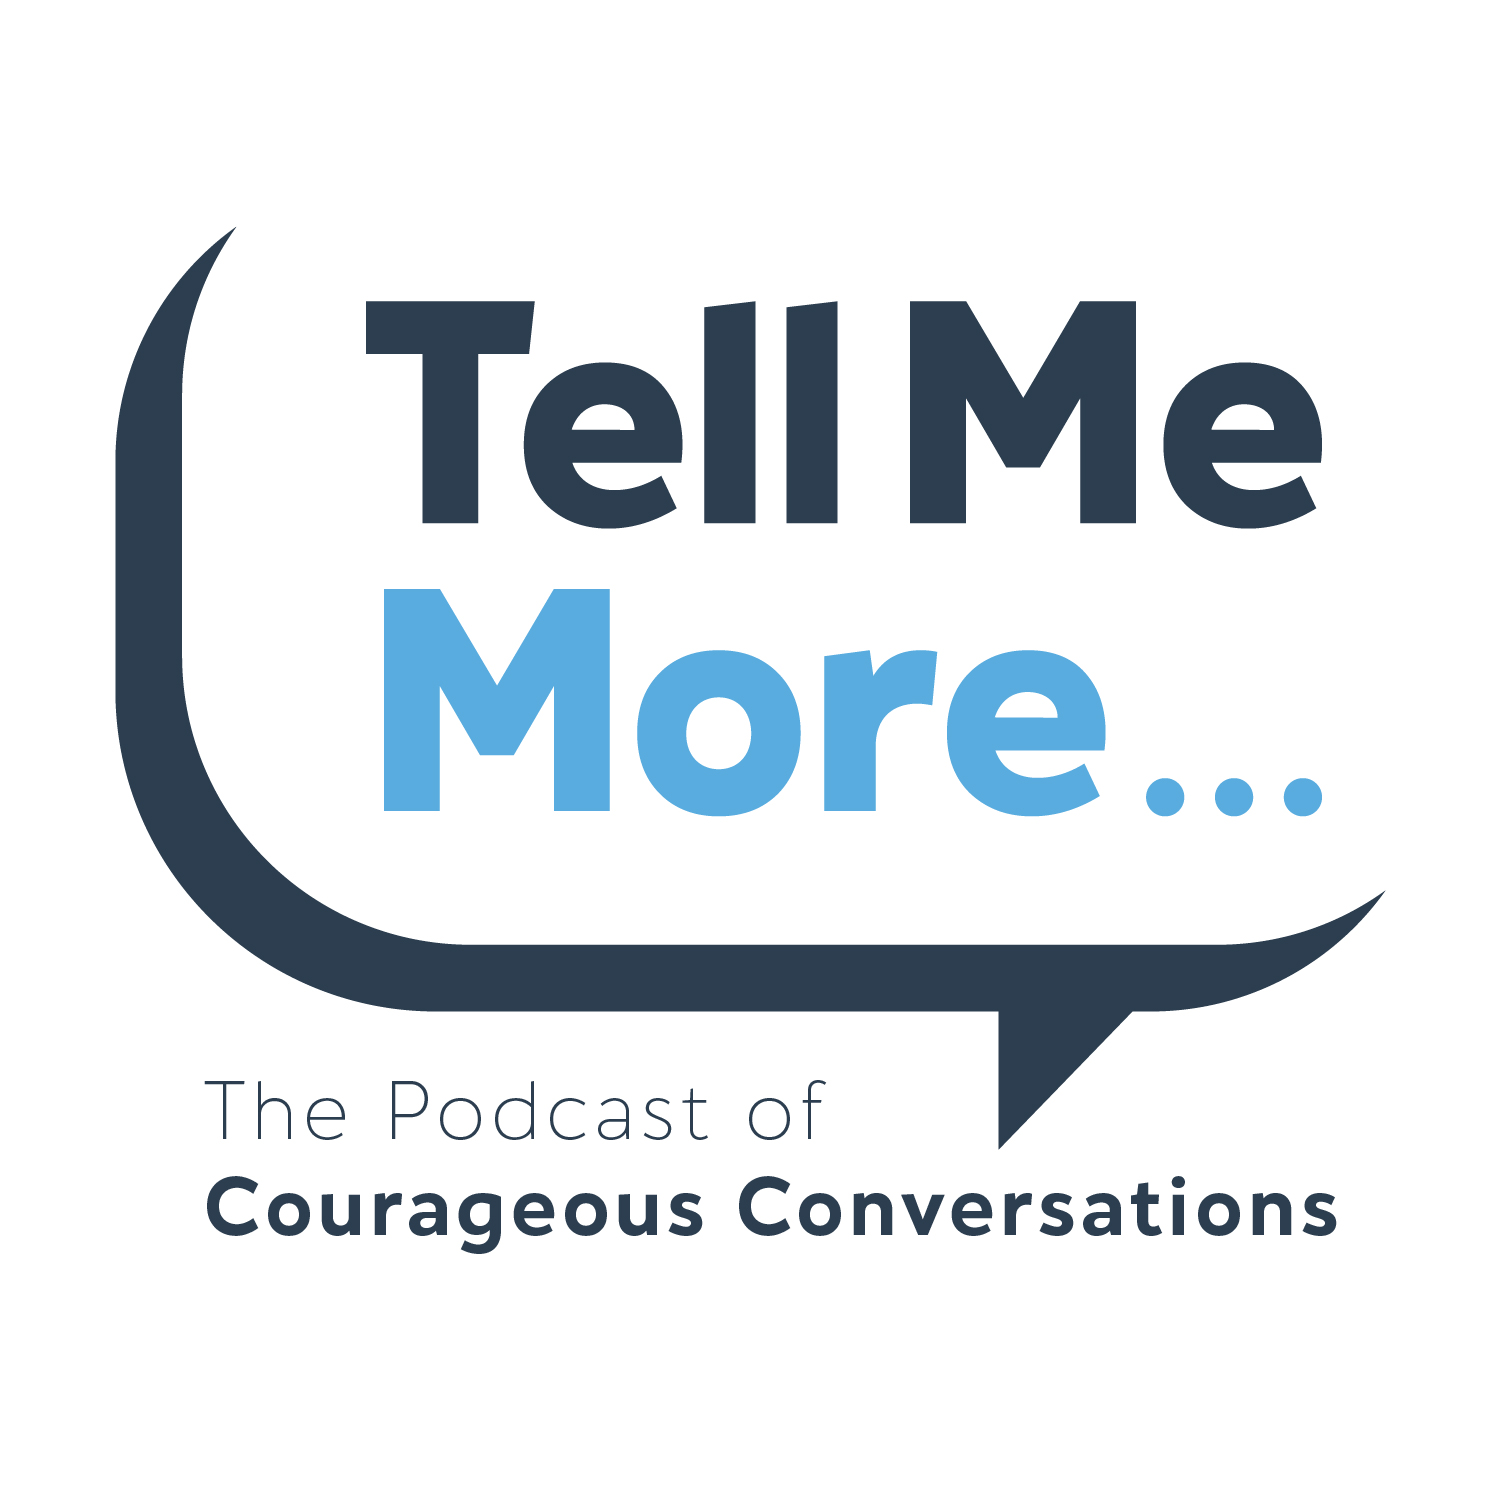 Tell More More... The Podcast of Courageous Conver